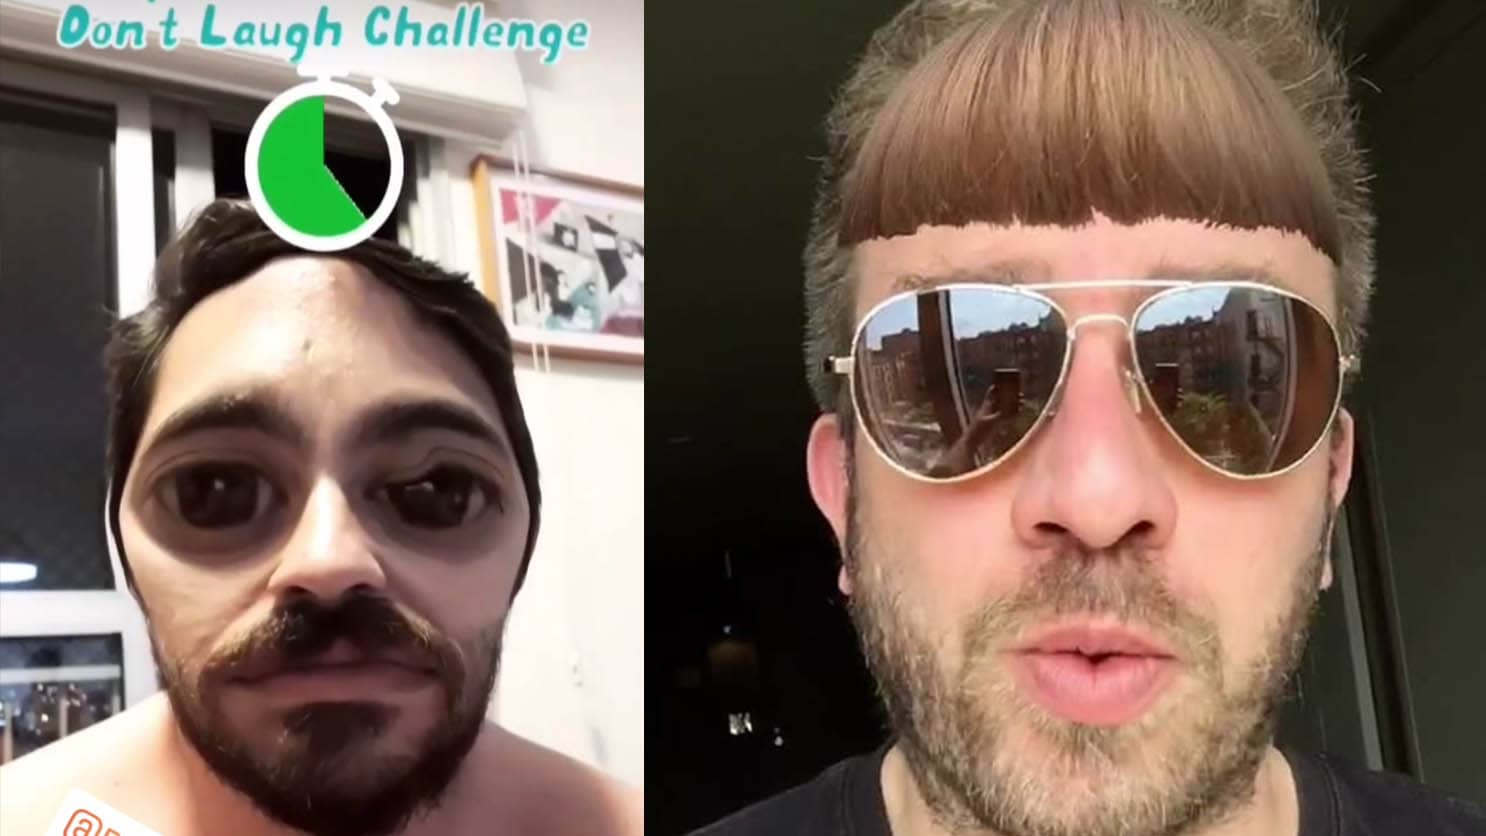 bangs don't laugh challenge filter instagram tiktok